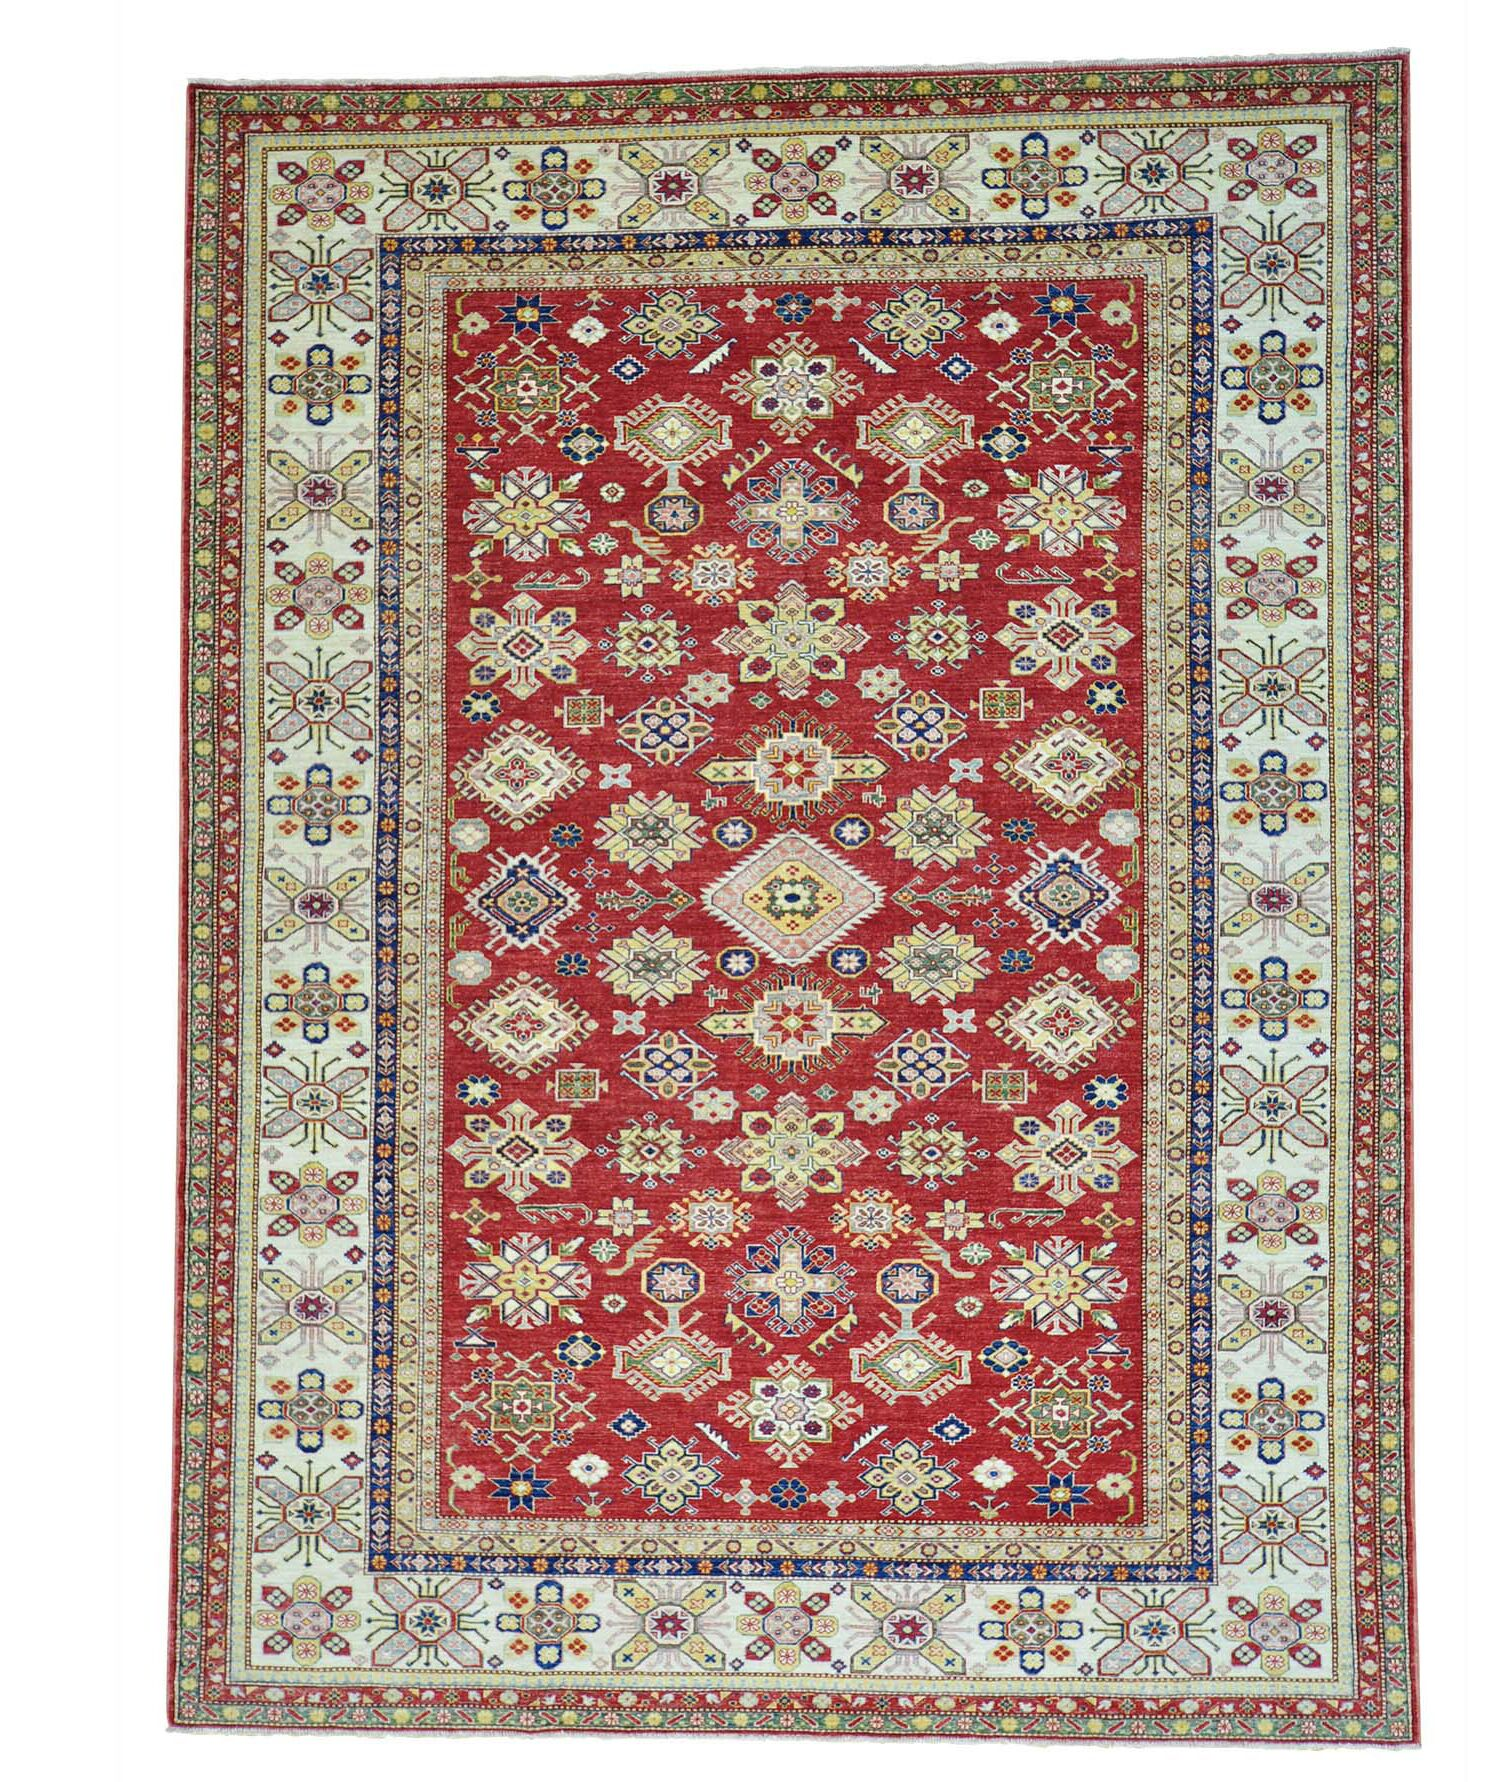 One-of-a-Kind Kempinski Overdyed Hamadan Worn Hand-Knotted Red/Yellow Area Rug